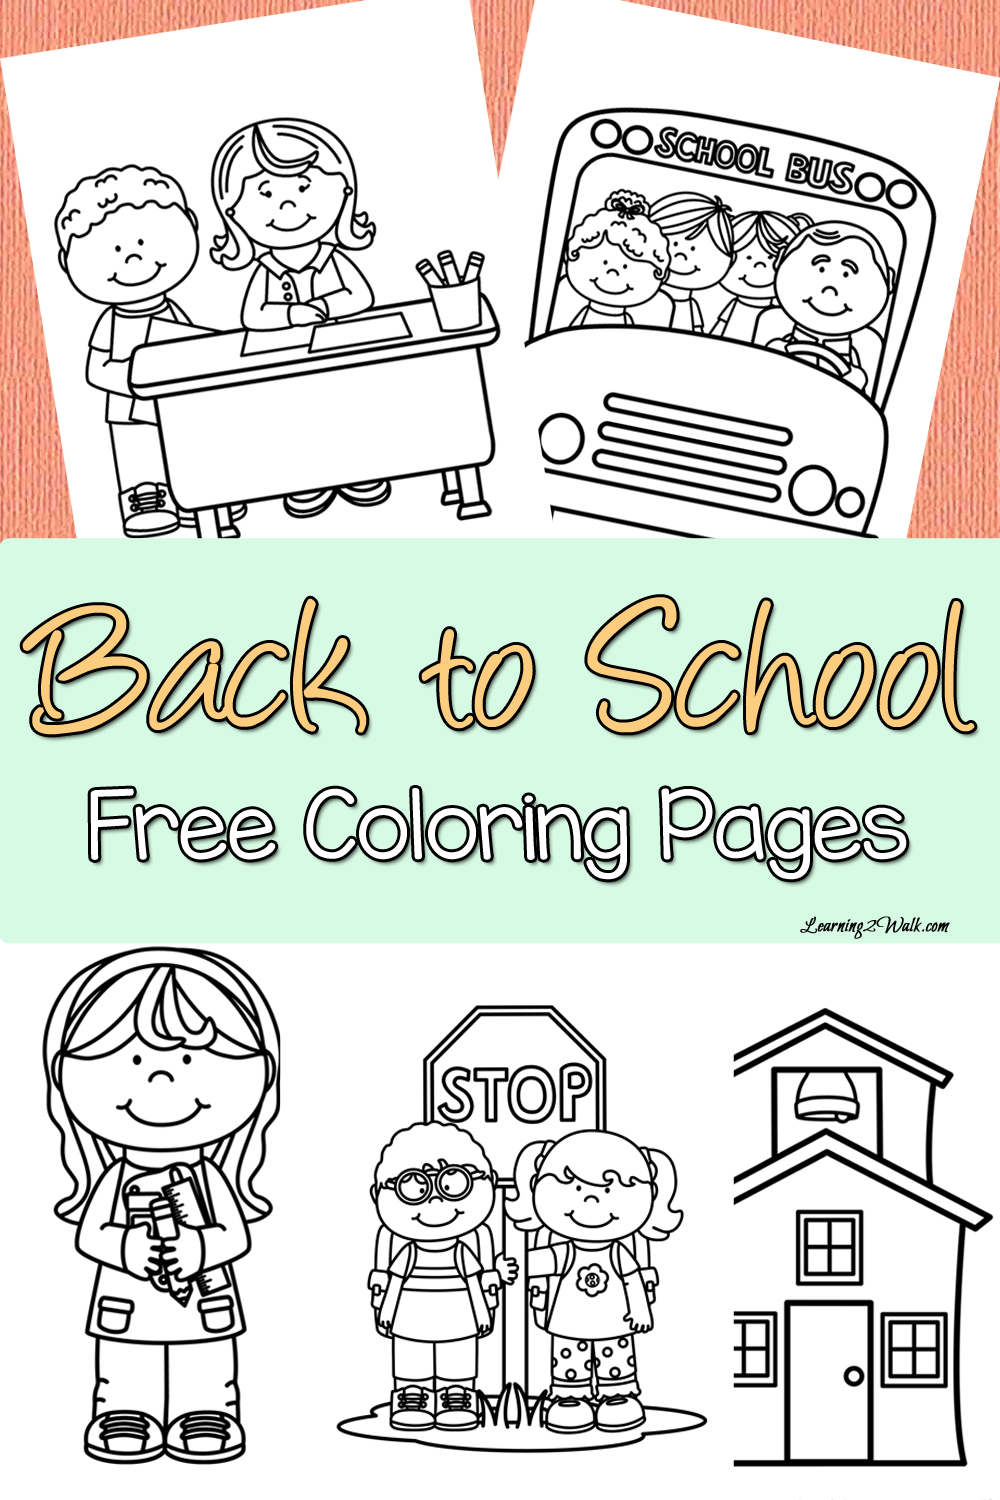 Back To School Free Coloring Page Set   Preschool Classroom   School - Free Printable Back To School Worksheets For Kindergarten